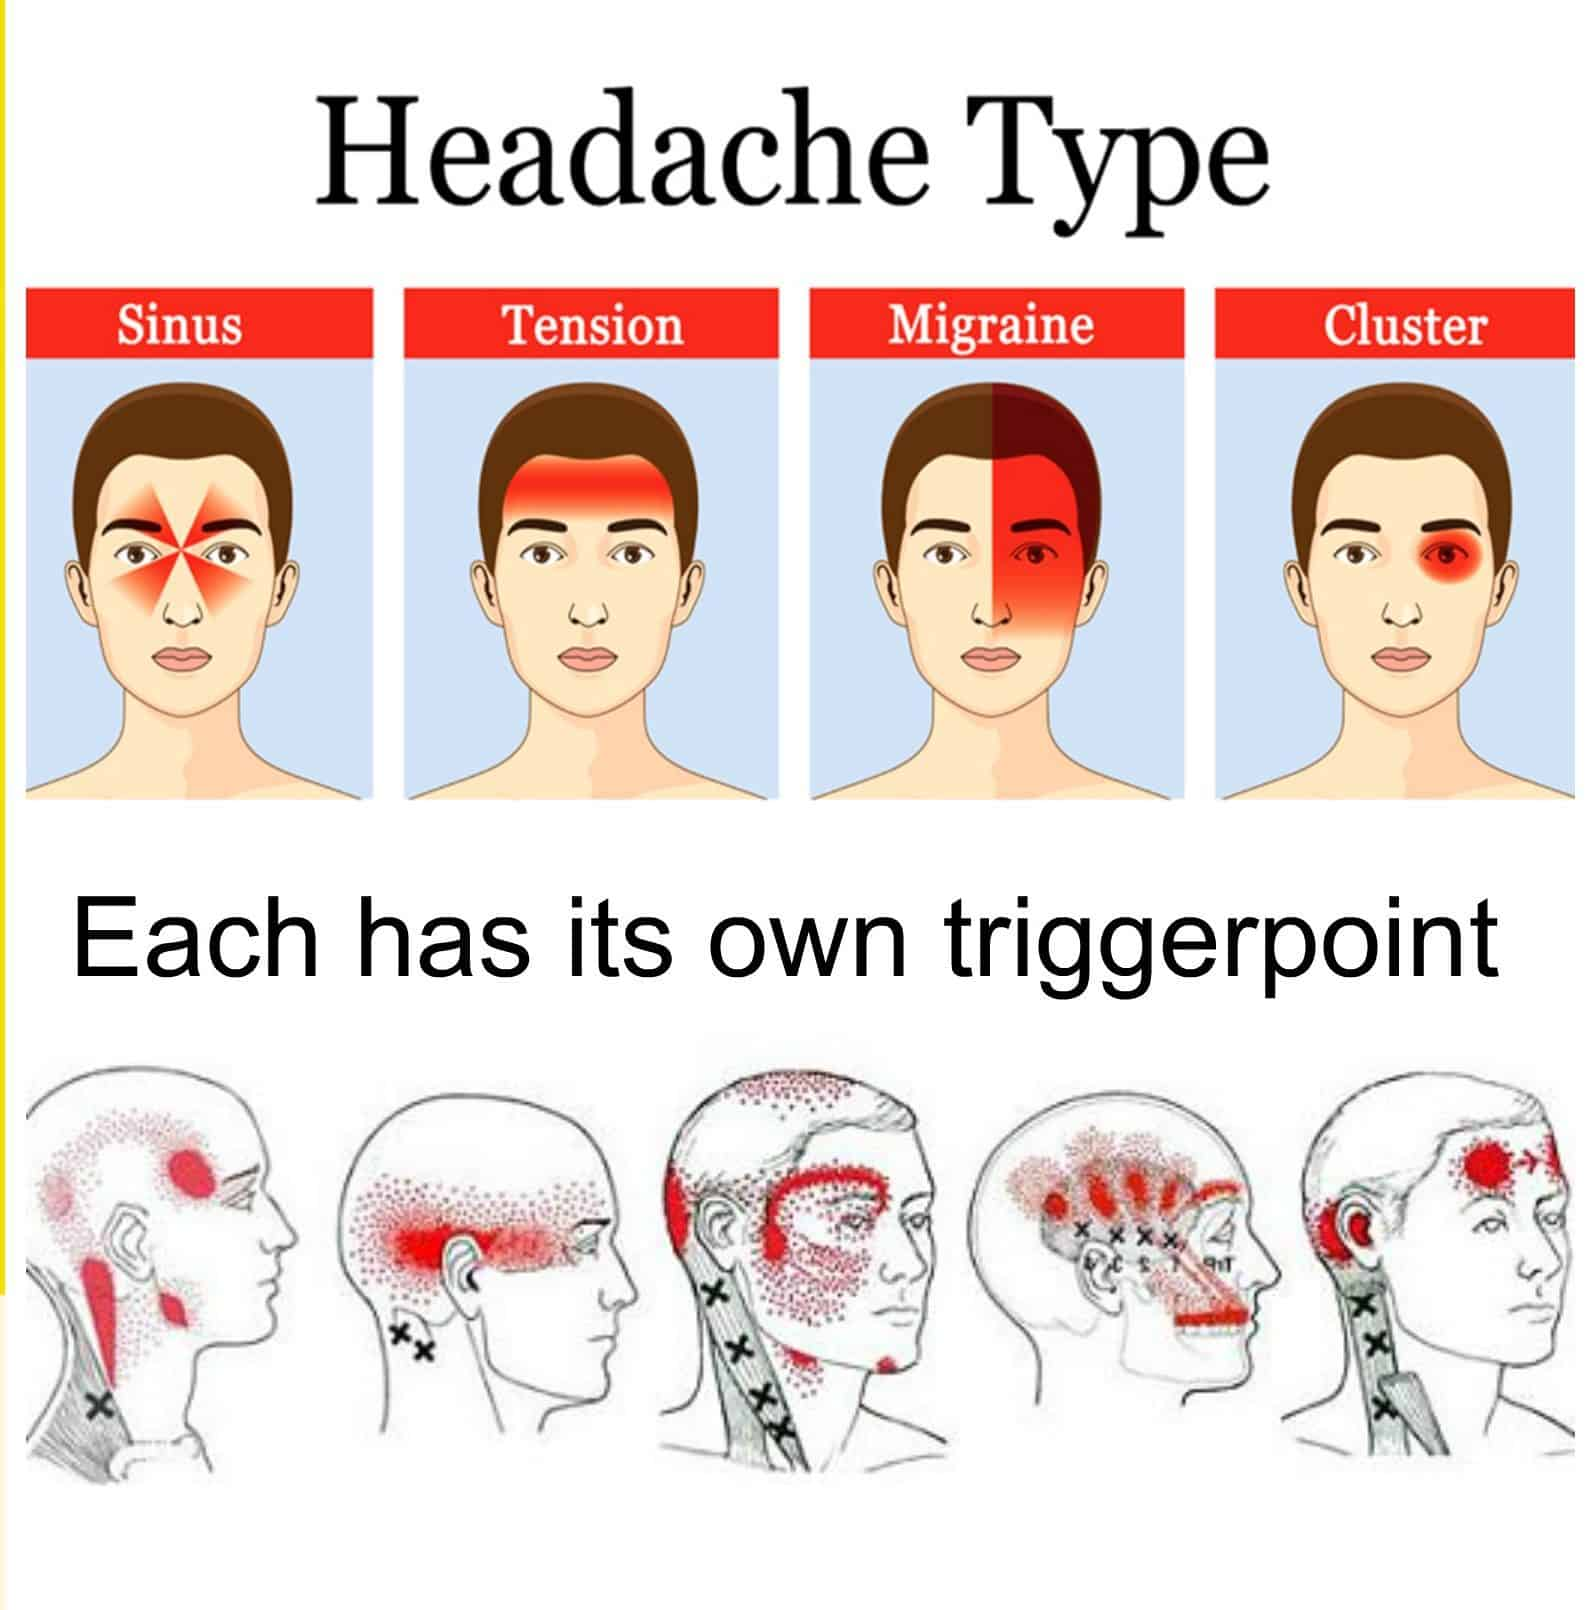 Differences In Clinical Features Of Cluster Headache Between Drinkers And Nondrinkers In Japan